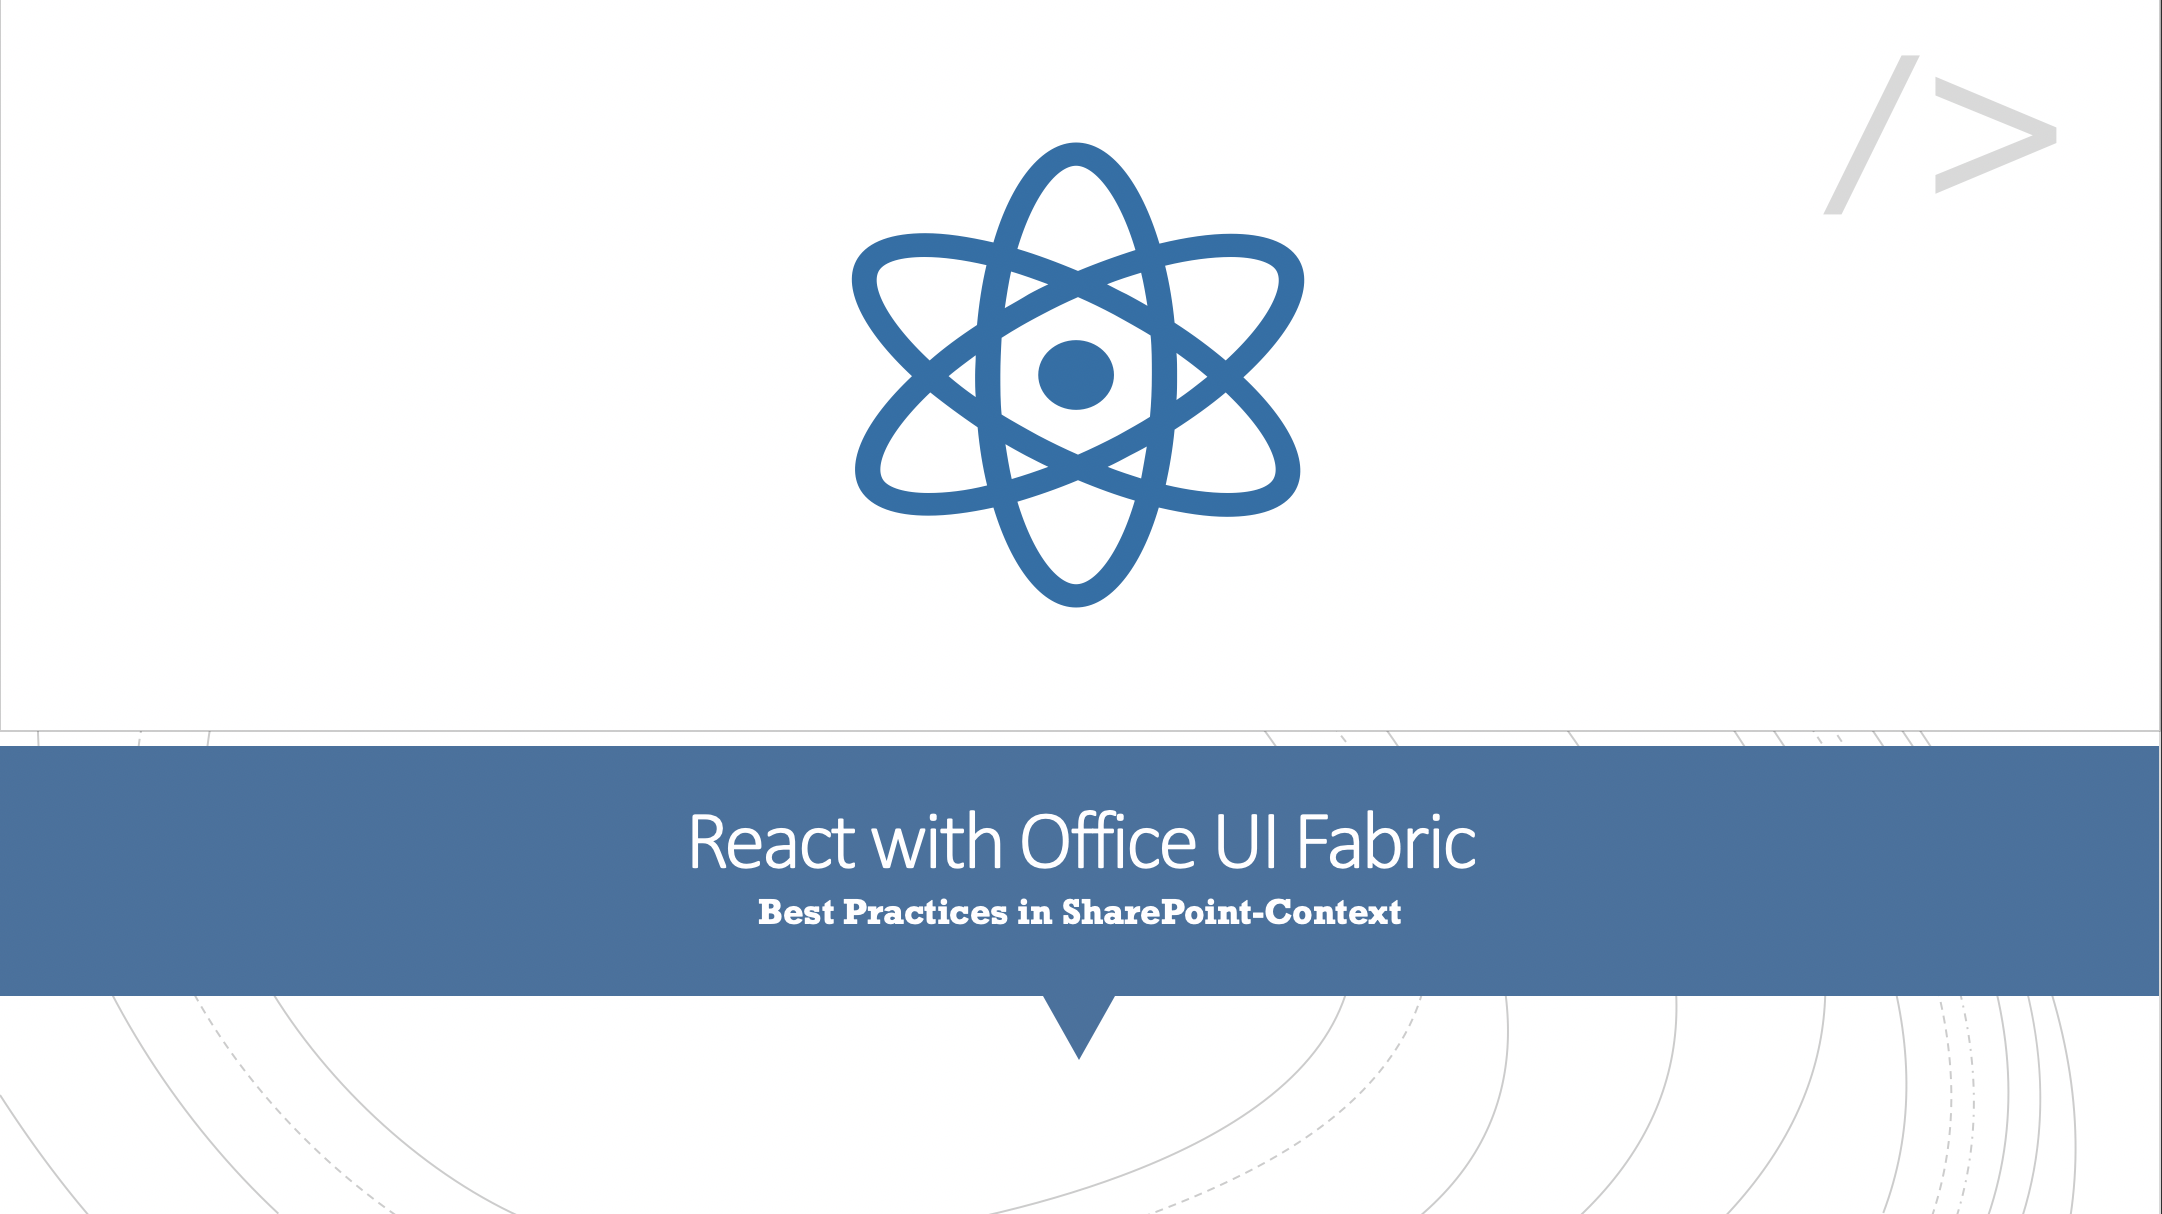 React with Office UI Fabric – Best Practices in SharePoint-Context